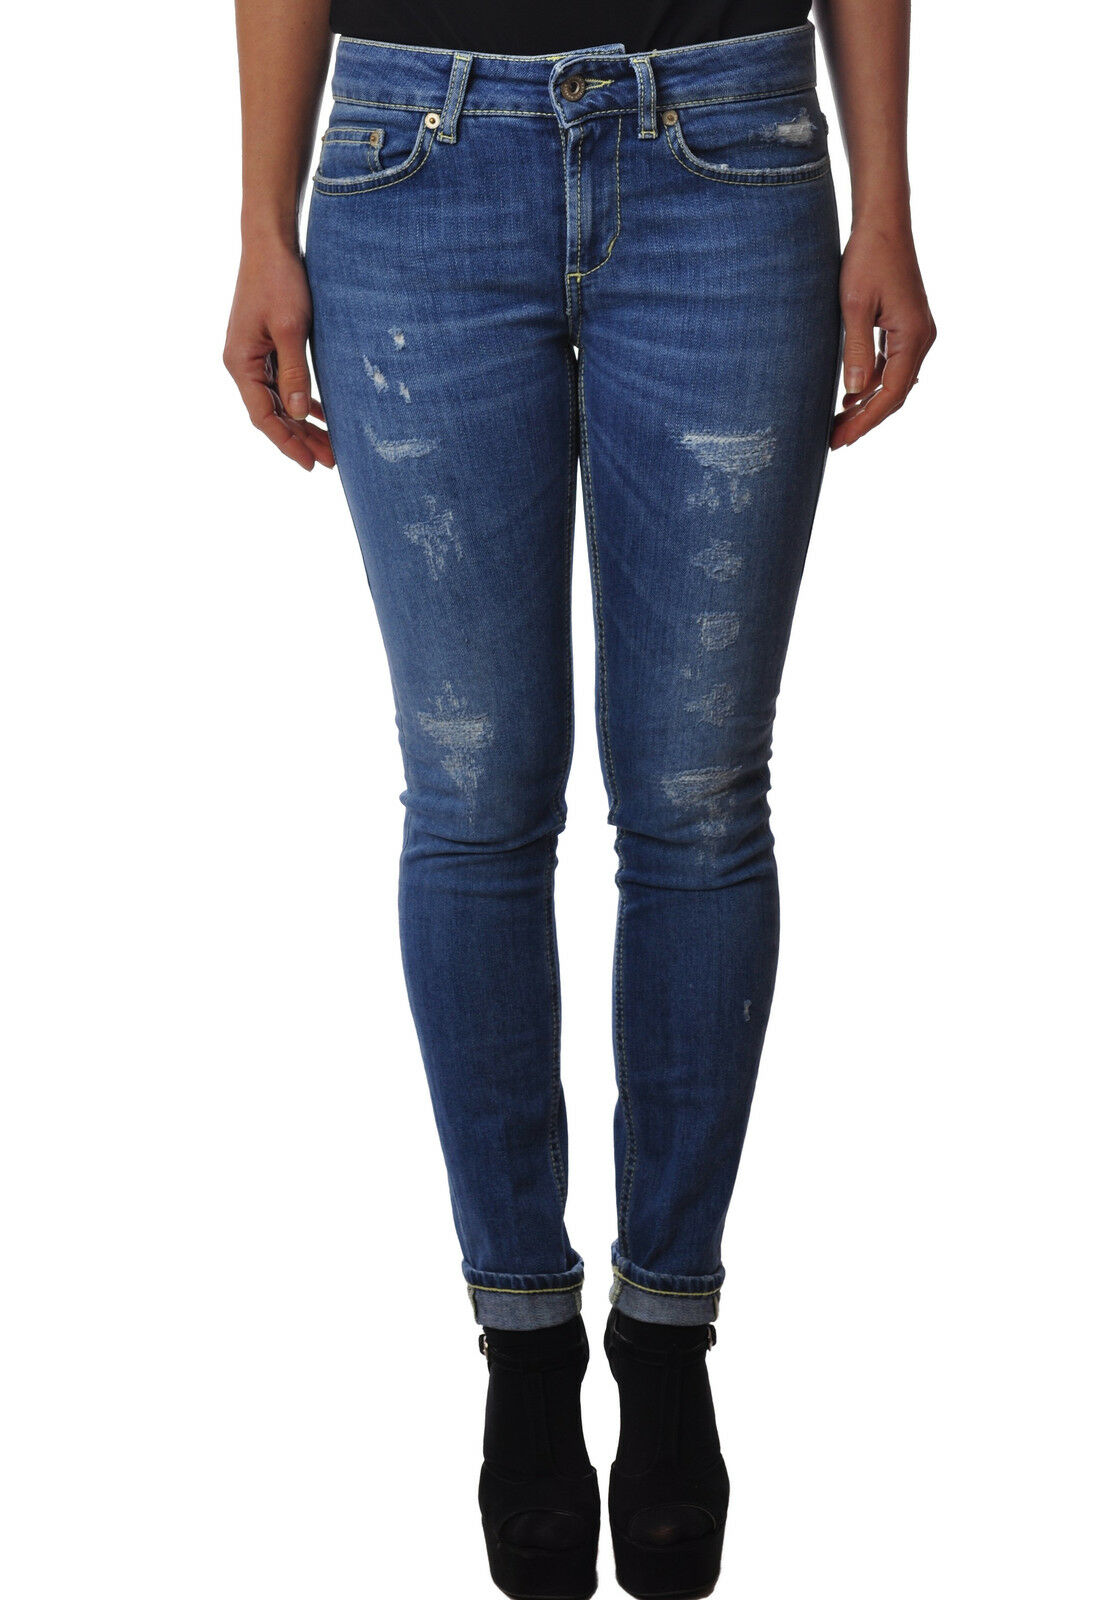 Dondup - Jeans-Pants-slim fit - Woman - Denim - 3332630L183854